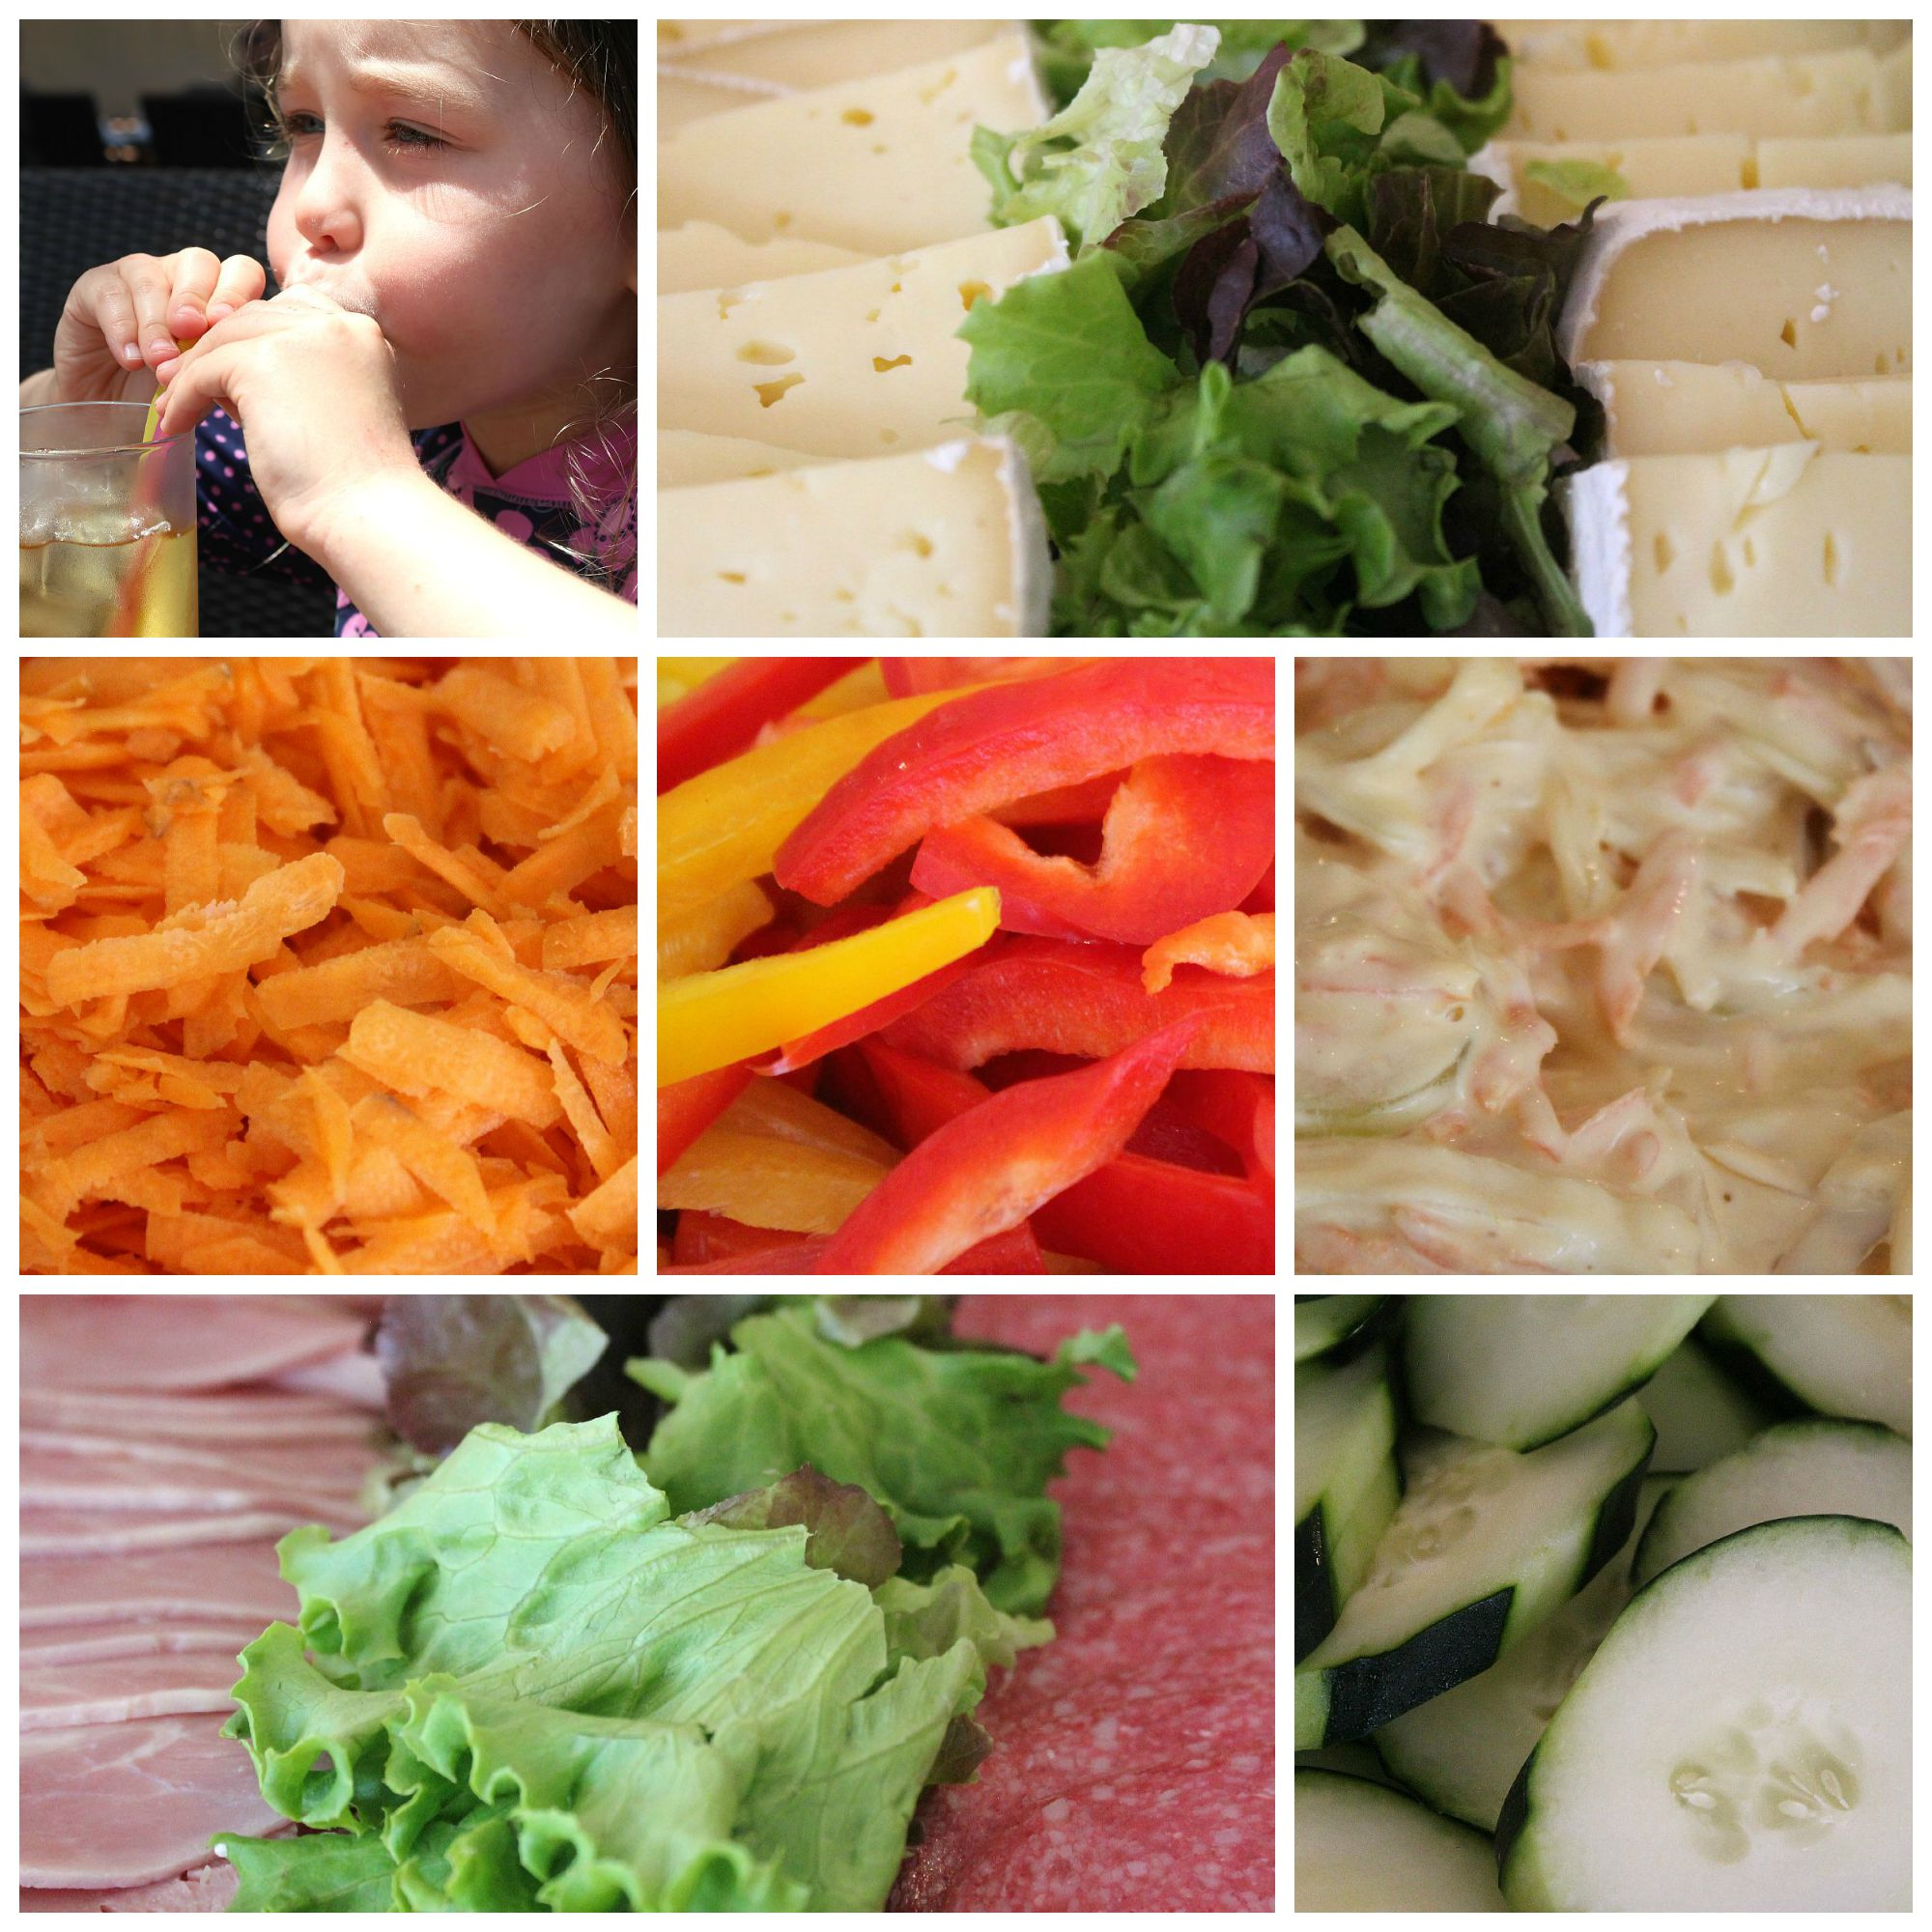 PODcast - food collage 3